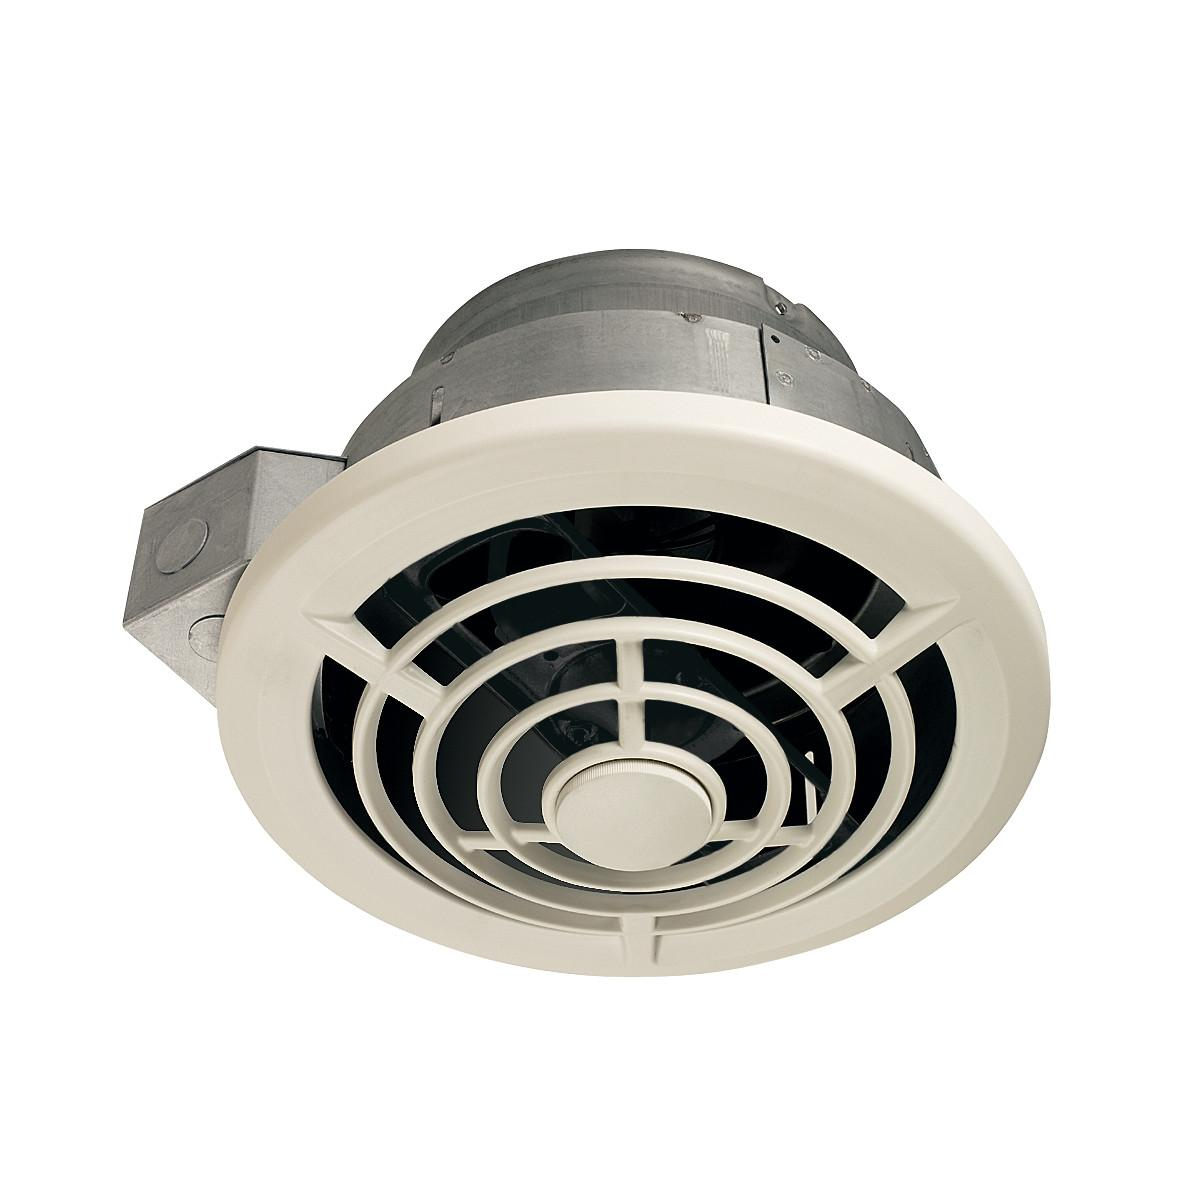 Broan NuTone Ceiling Mount Utility Fan With Vertical Discharge - Nutone scovill bathroom fan